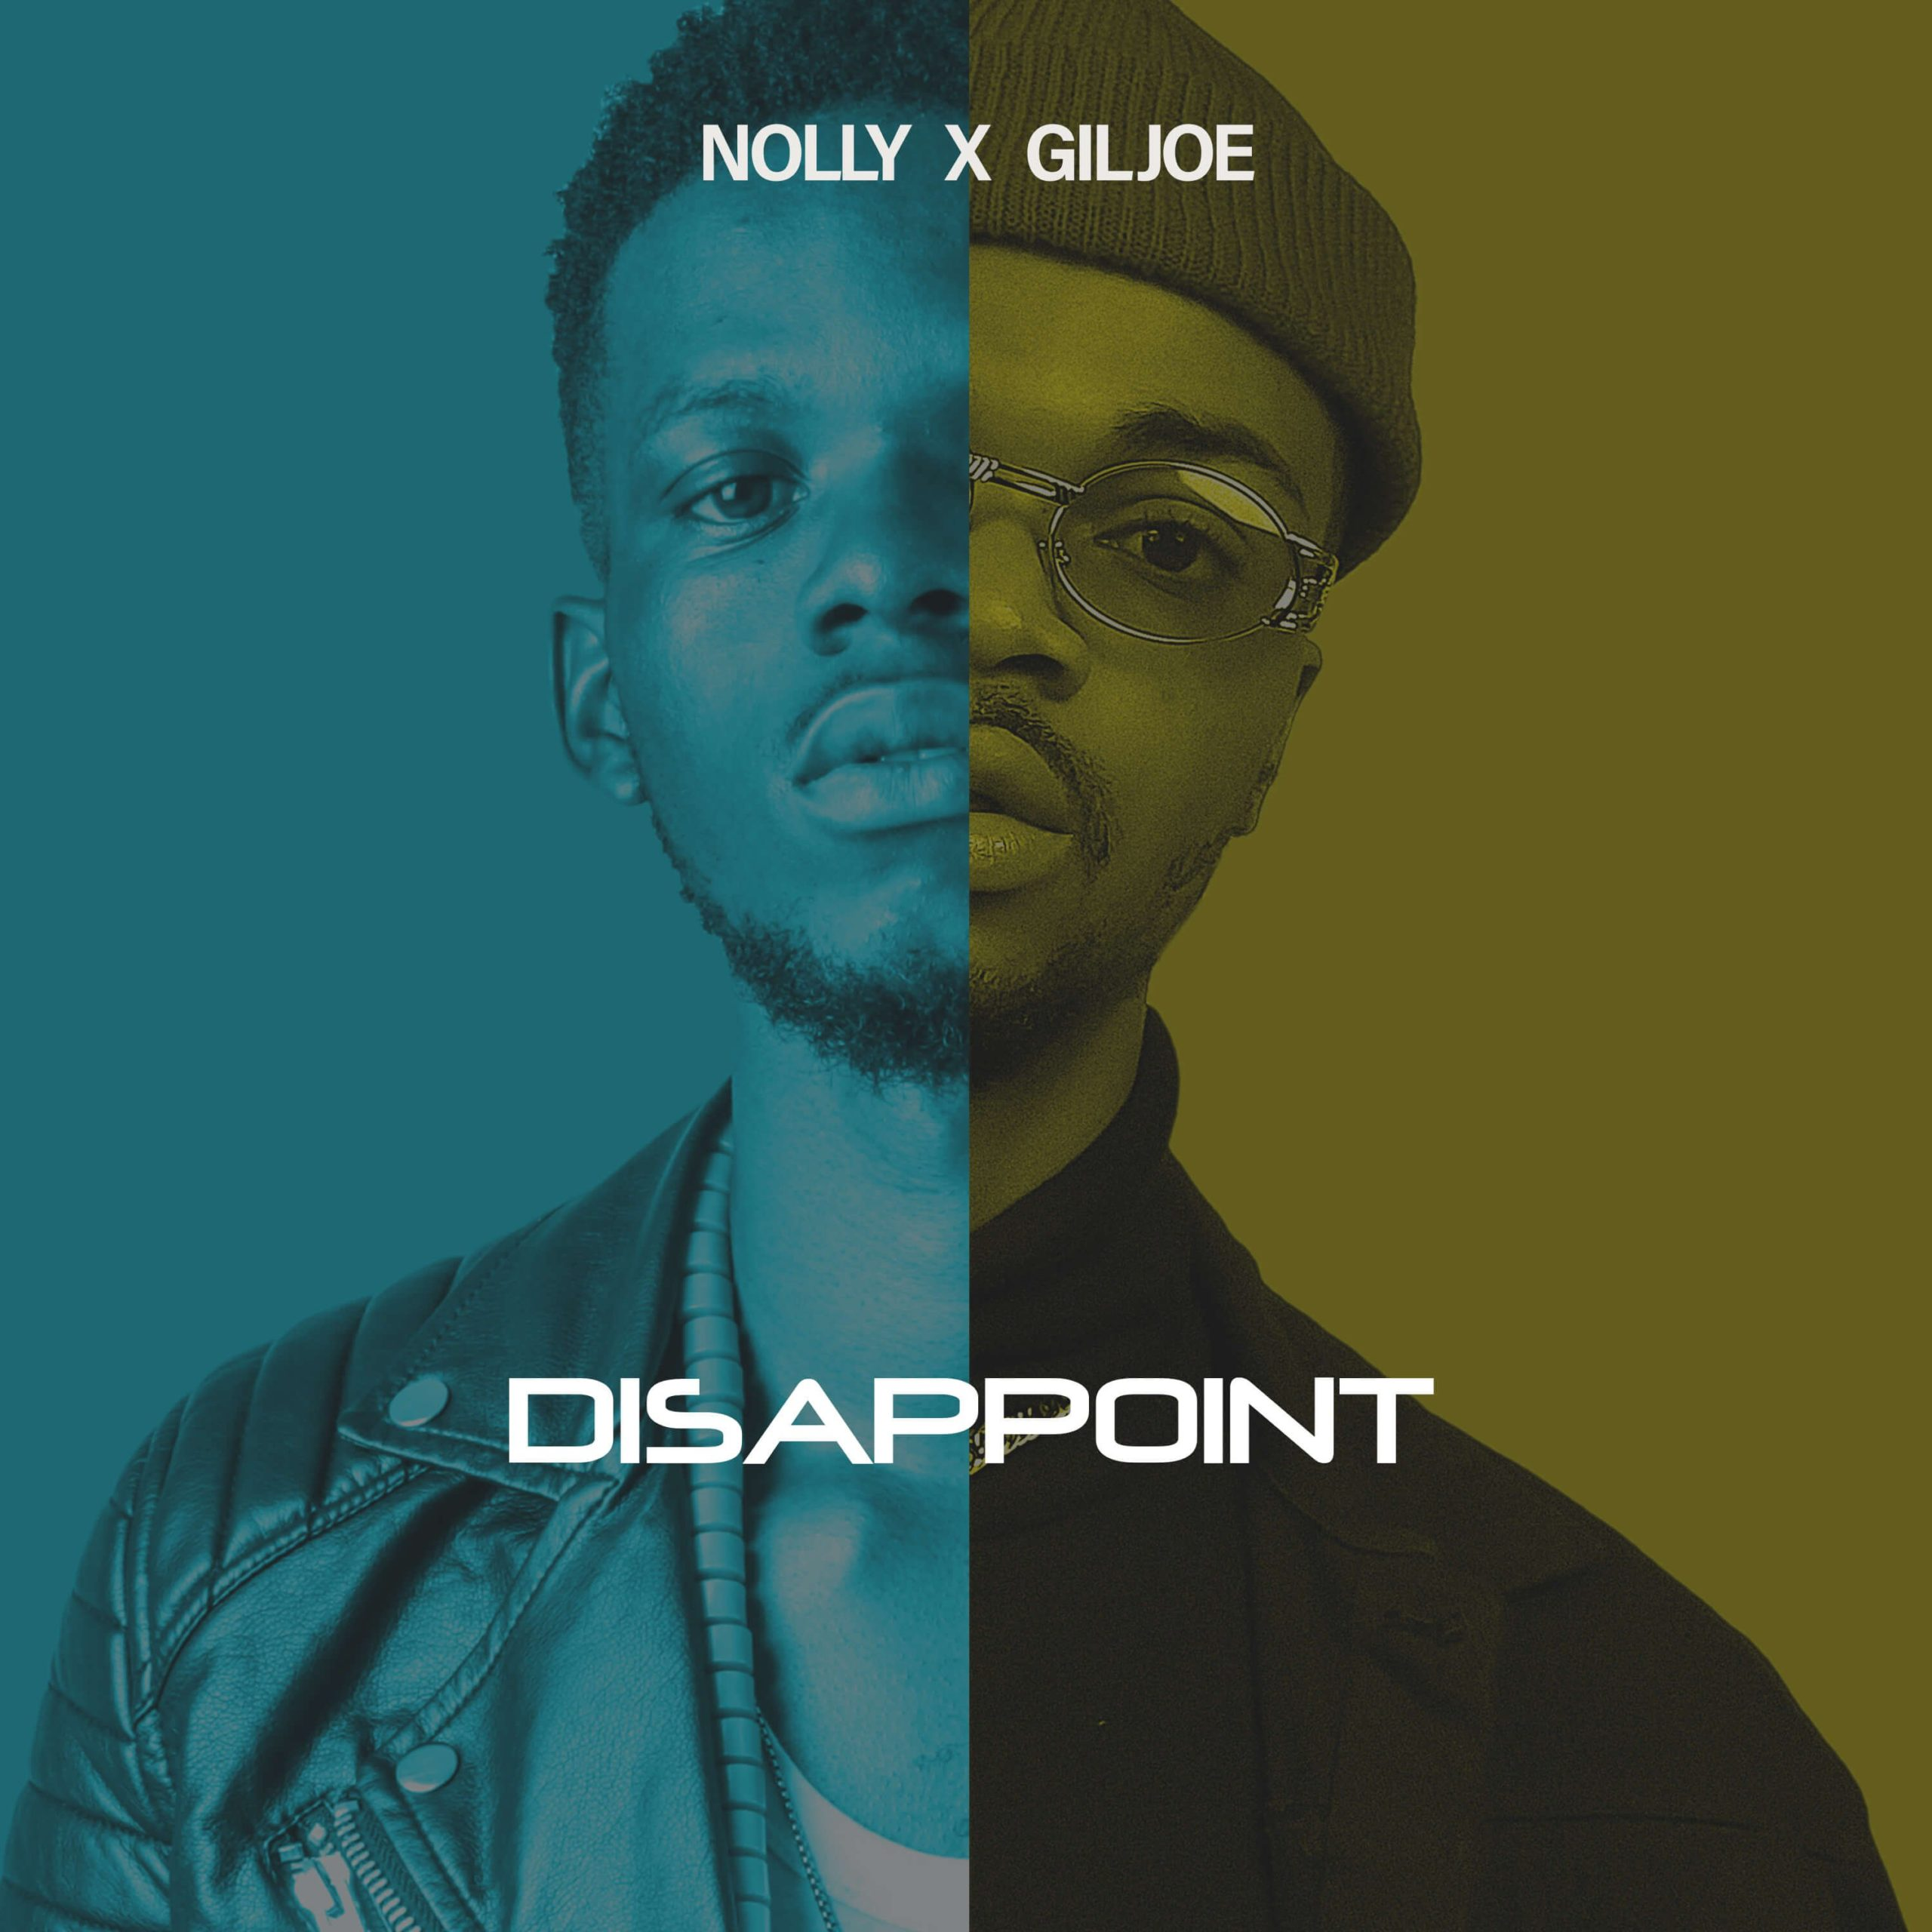 DOWNLOAD Music: Nolly – Disappoint (ft. Gil Joe)